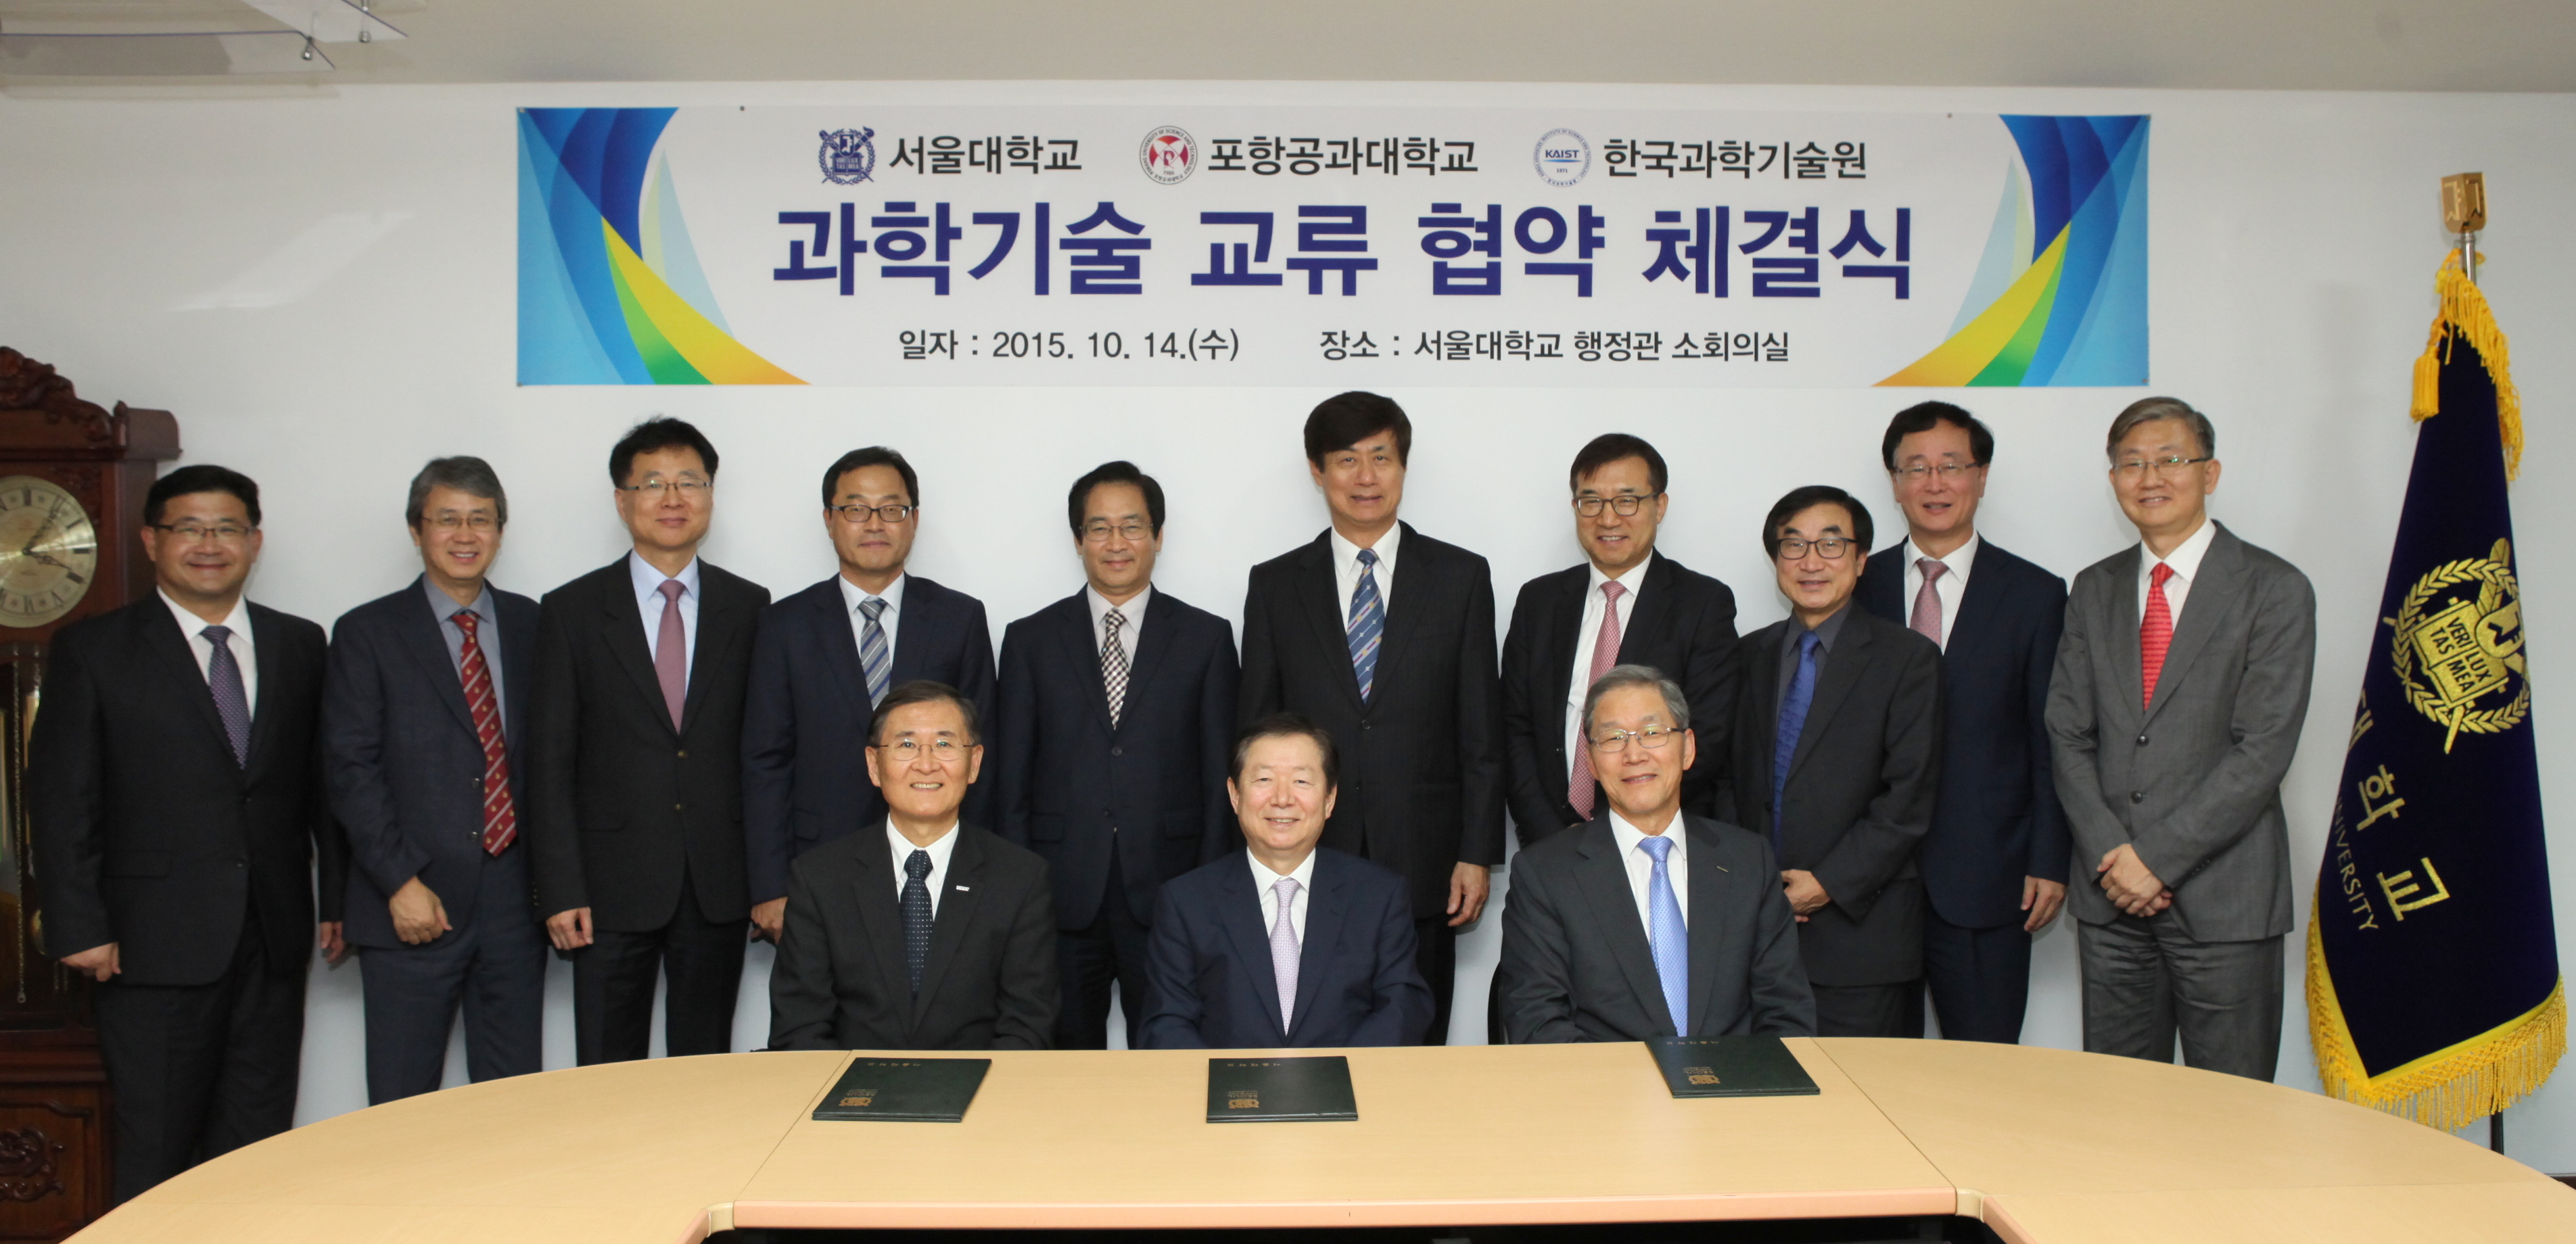 President Doh-Yeon Kim of POSTECH, President Nak-in Sung of Seoul National University (SNU), and President Sung-Mo Kang of KAIST